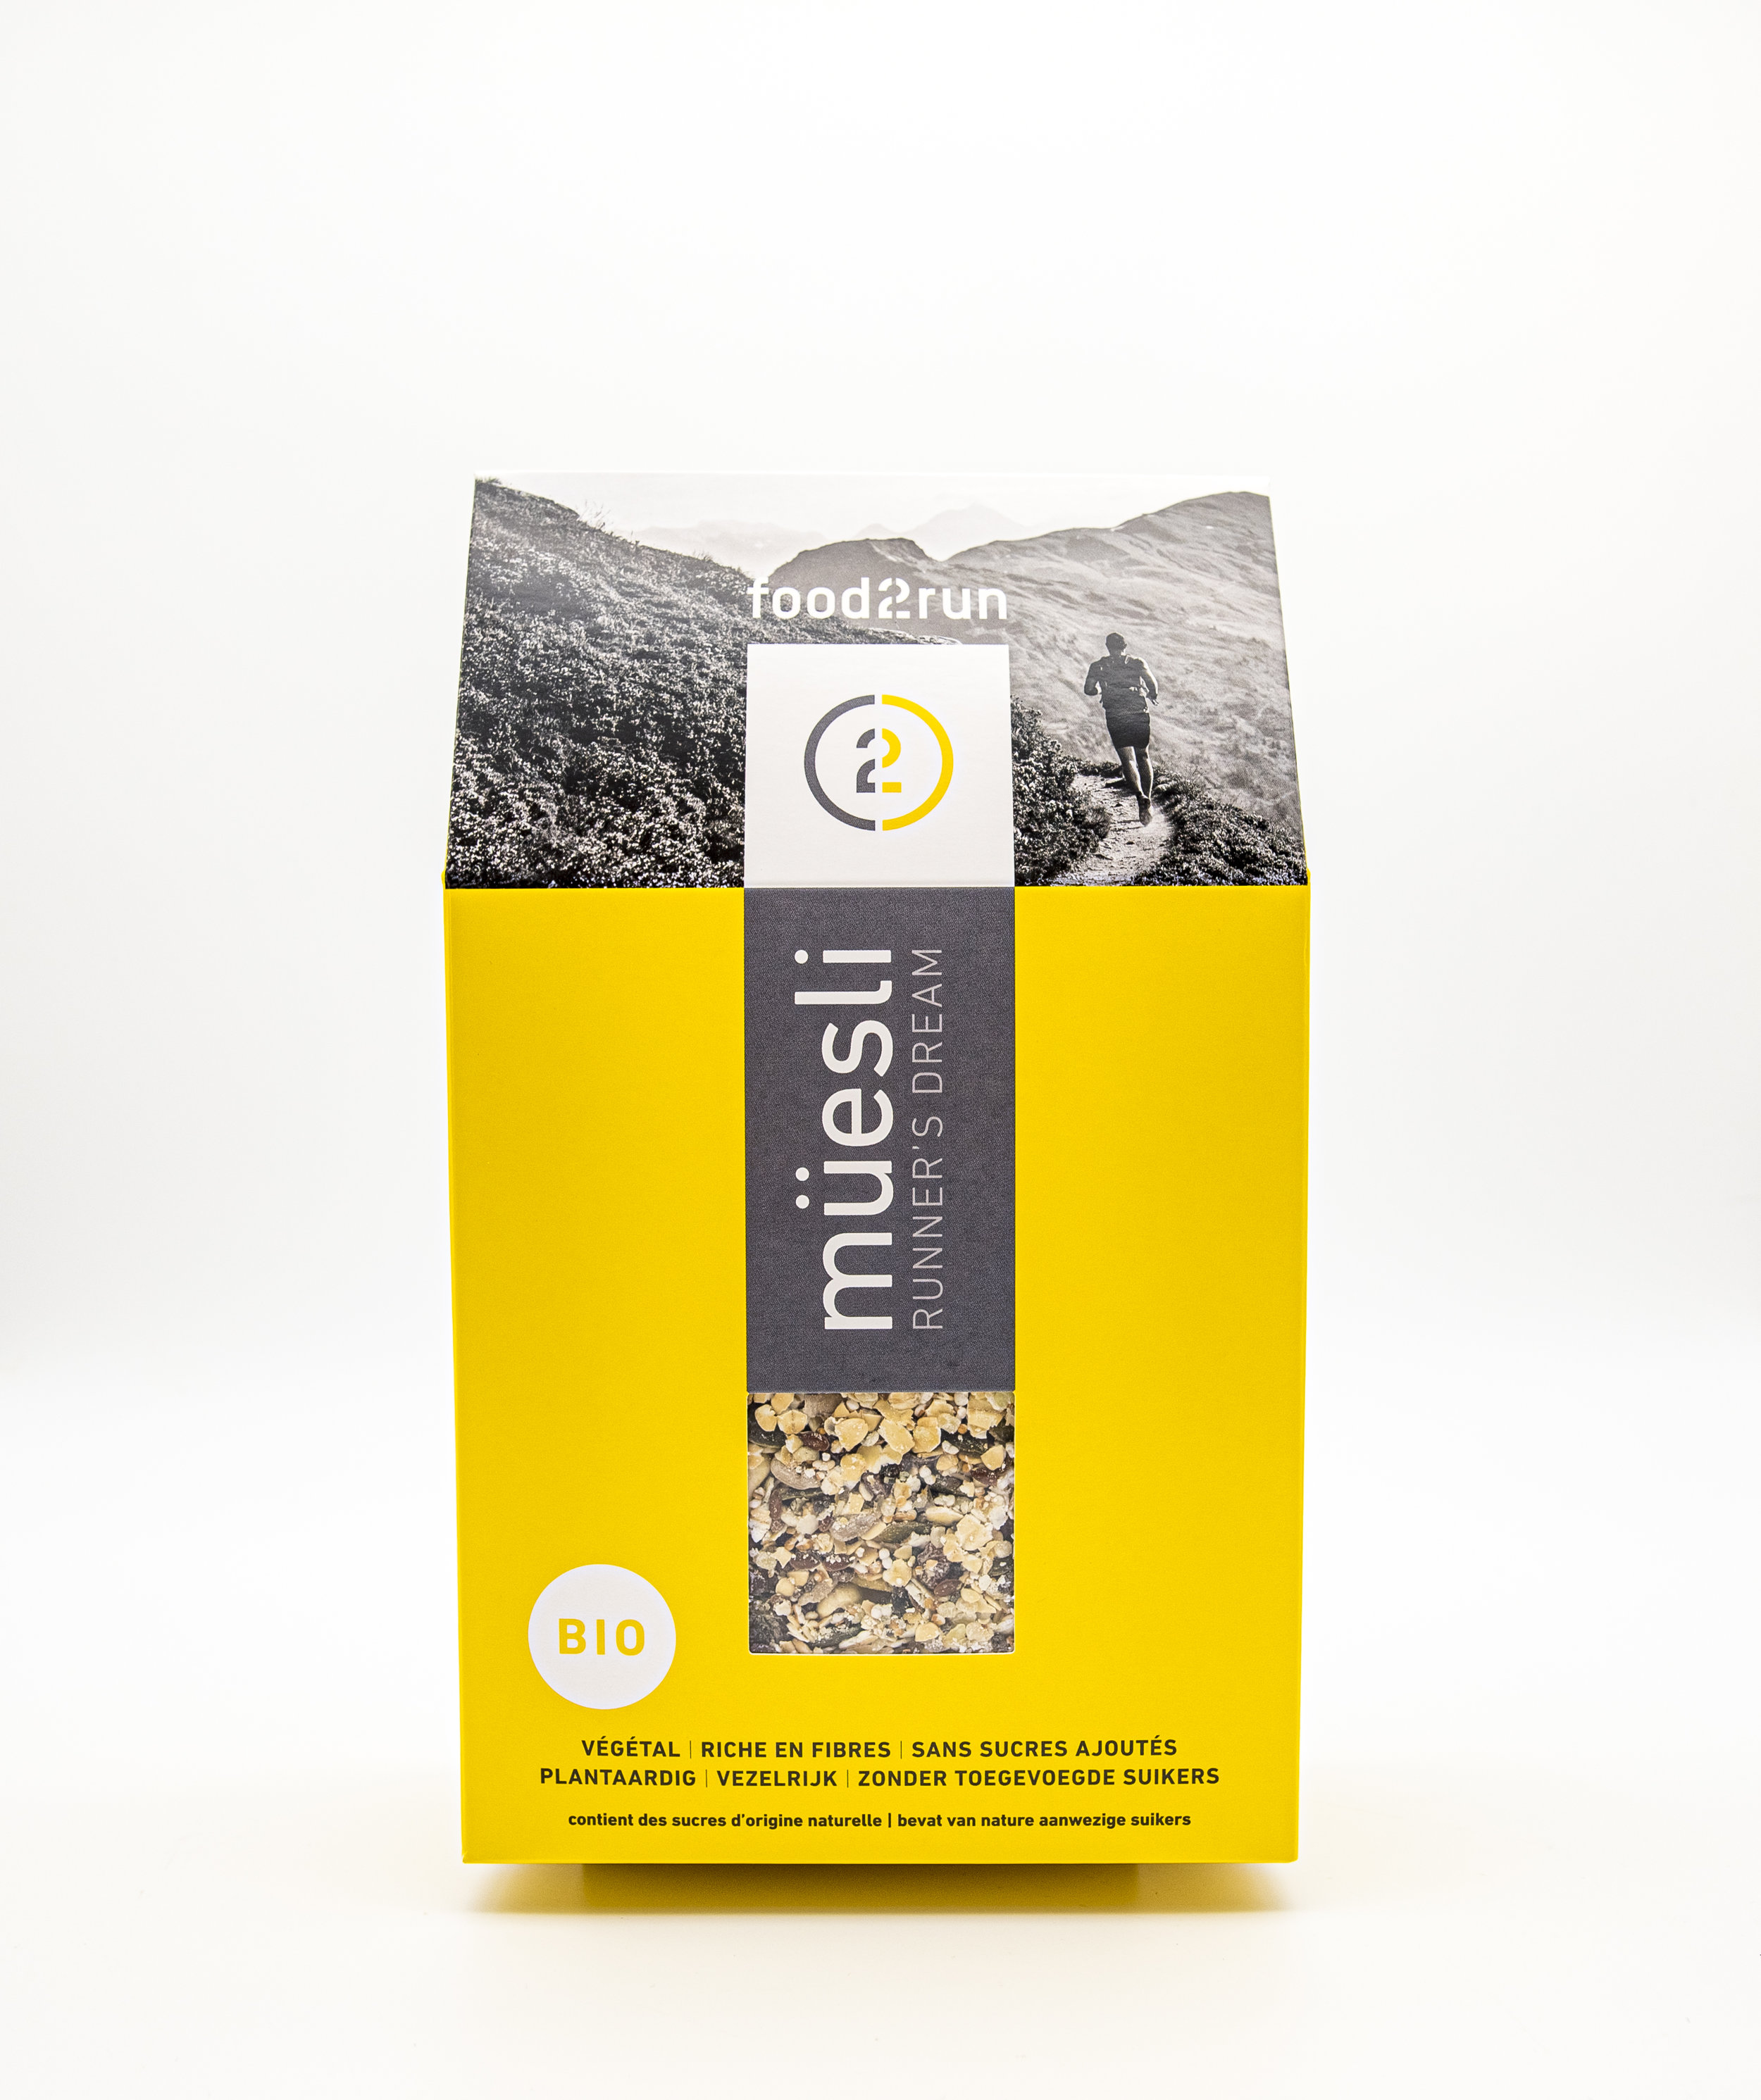 renata-rehor-muesli-food2run-sport